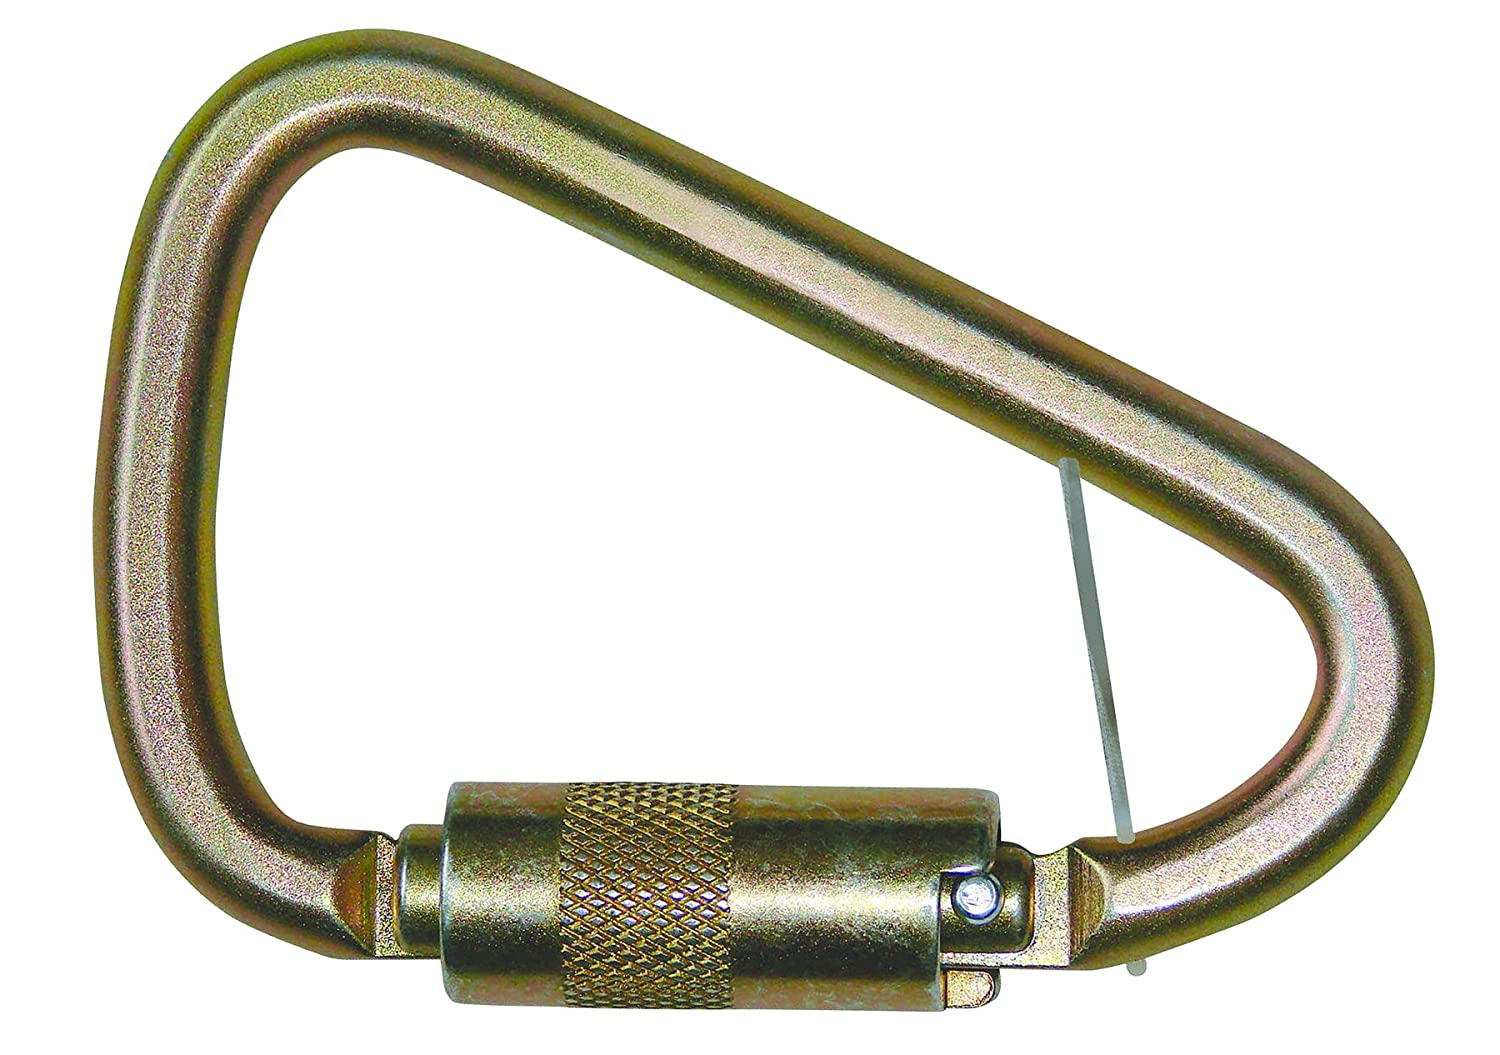 3600 lbs Gate 3//4 Gate Opening 1//4 Diameter x 8 Length Elk River 13618 Vinyl Coated Galvanized Aircraft Cable Sling with 2 Ring and Zsnaphook